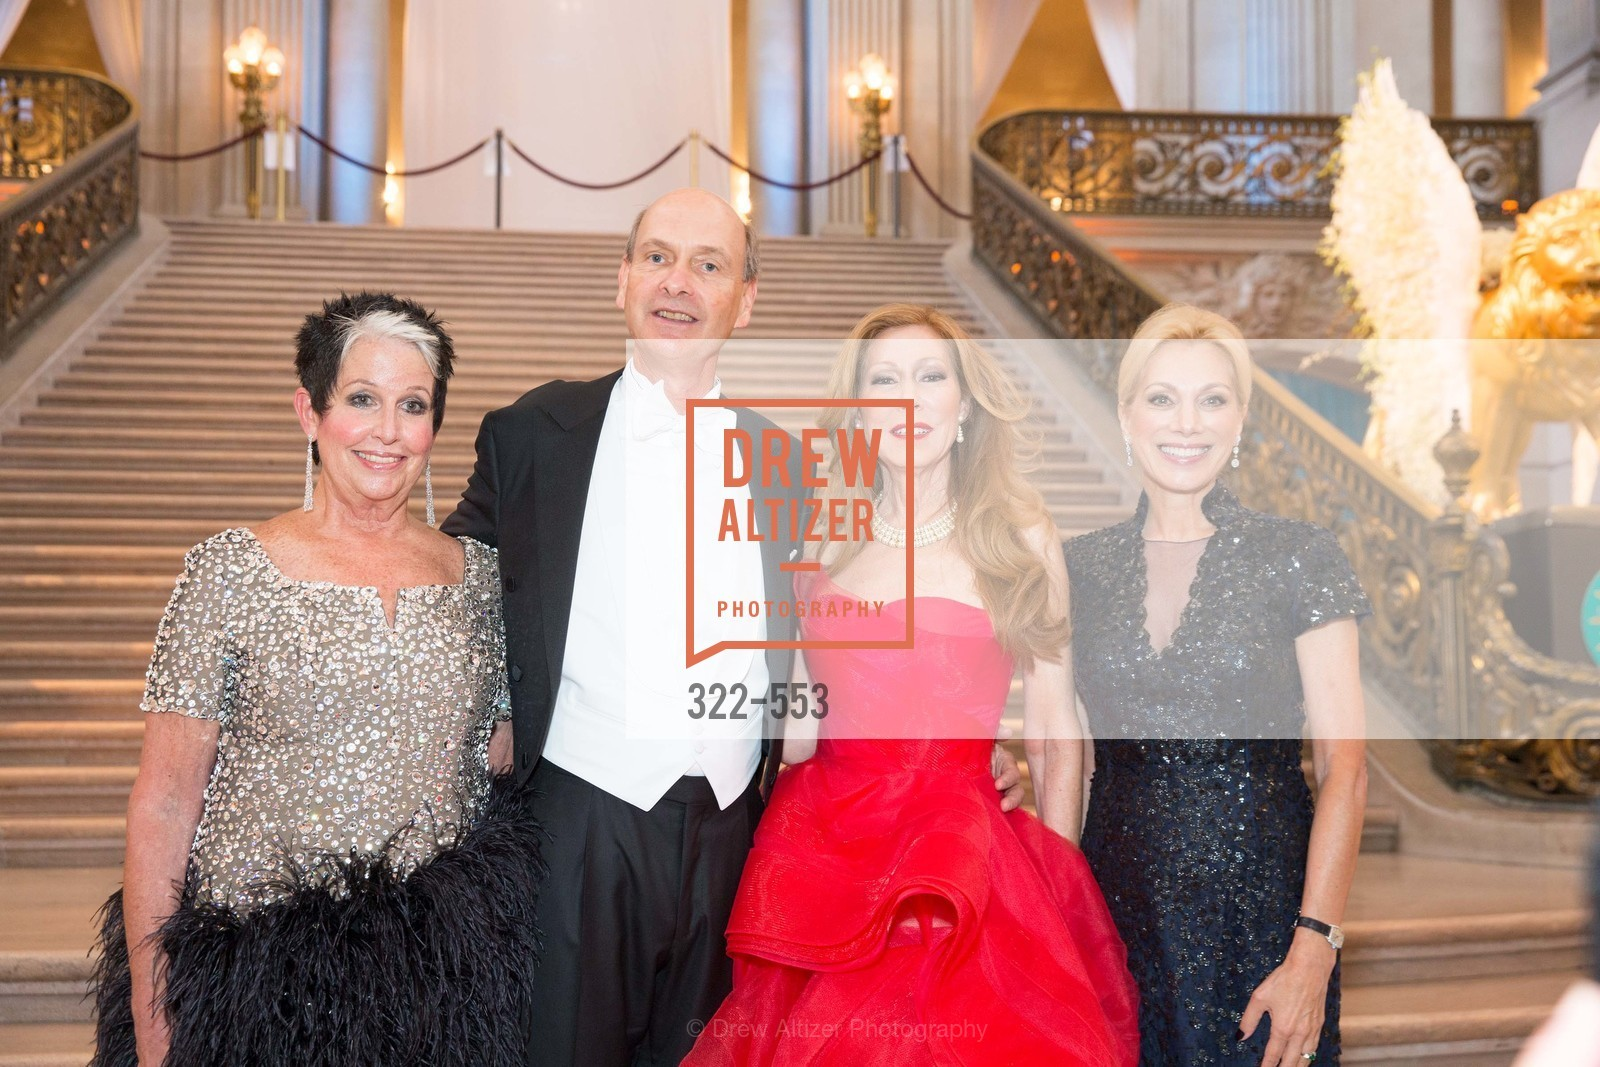 Karen Kubin, Keith Geeslin, Teresa Medearis, Cynthia Schreuder, SAN FRANCISCO OPERA'S 92nd Opera Ball 2014: PASSIONE, Opera House, September 5th, 2014,Drew Altizer, Drew Altizer Photography, full-service agency, private events, San Francisco photographer, photographer california